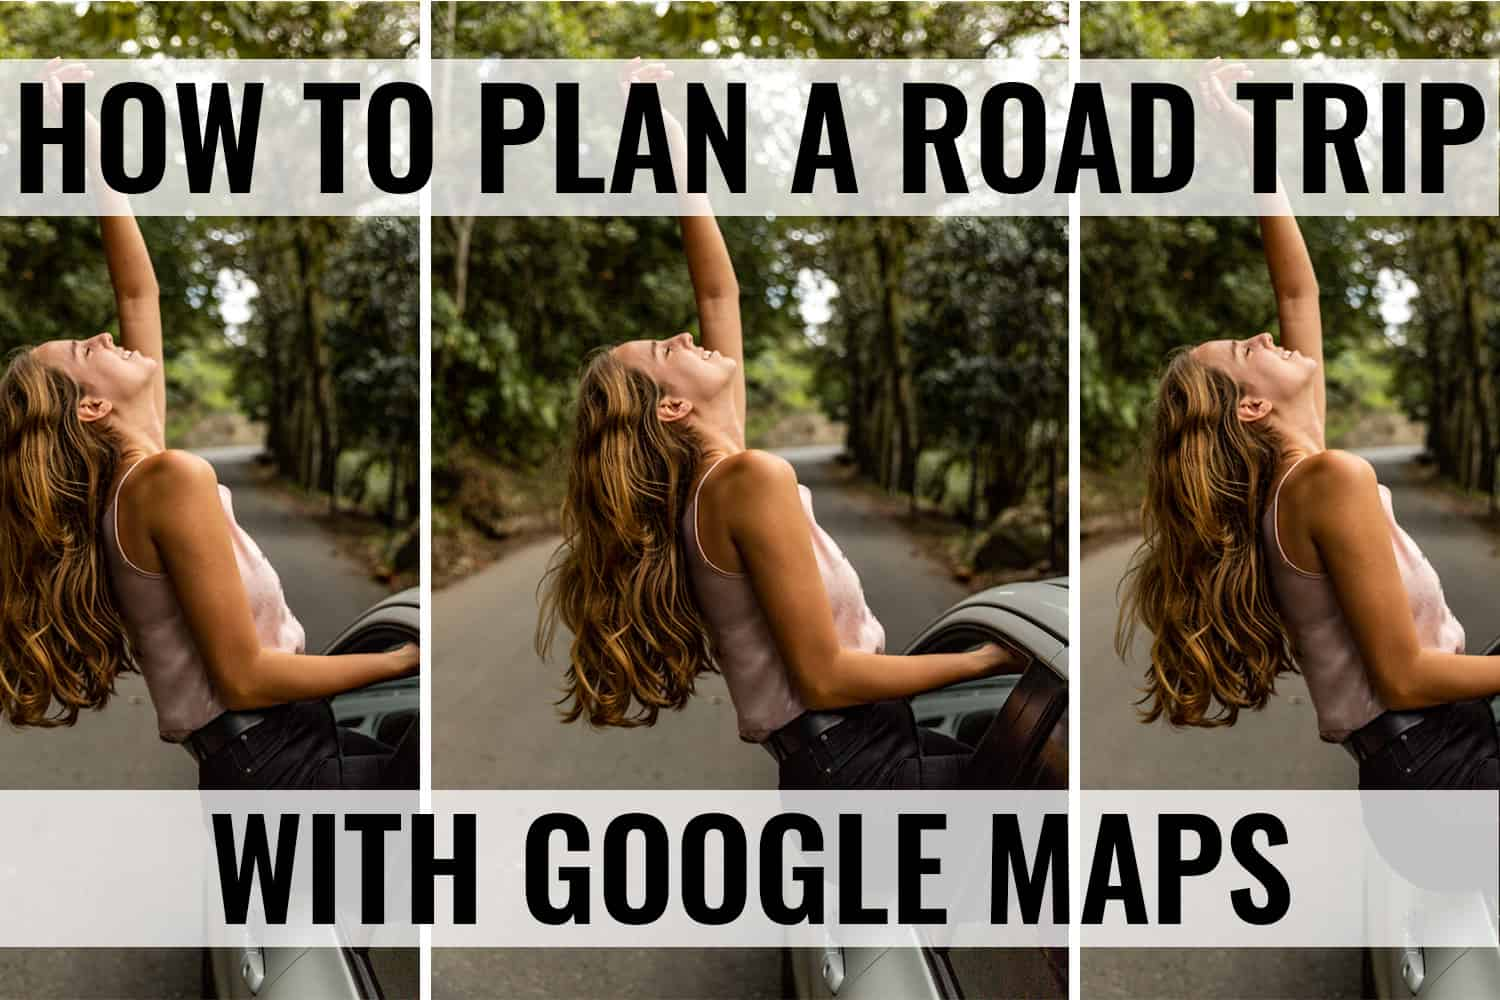 how to plan a road trip with google maps